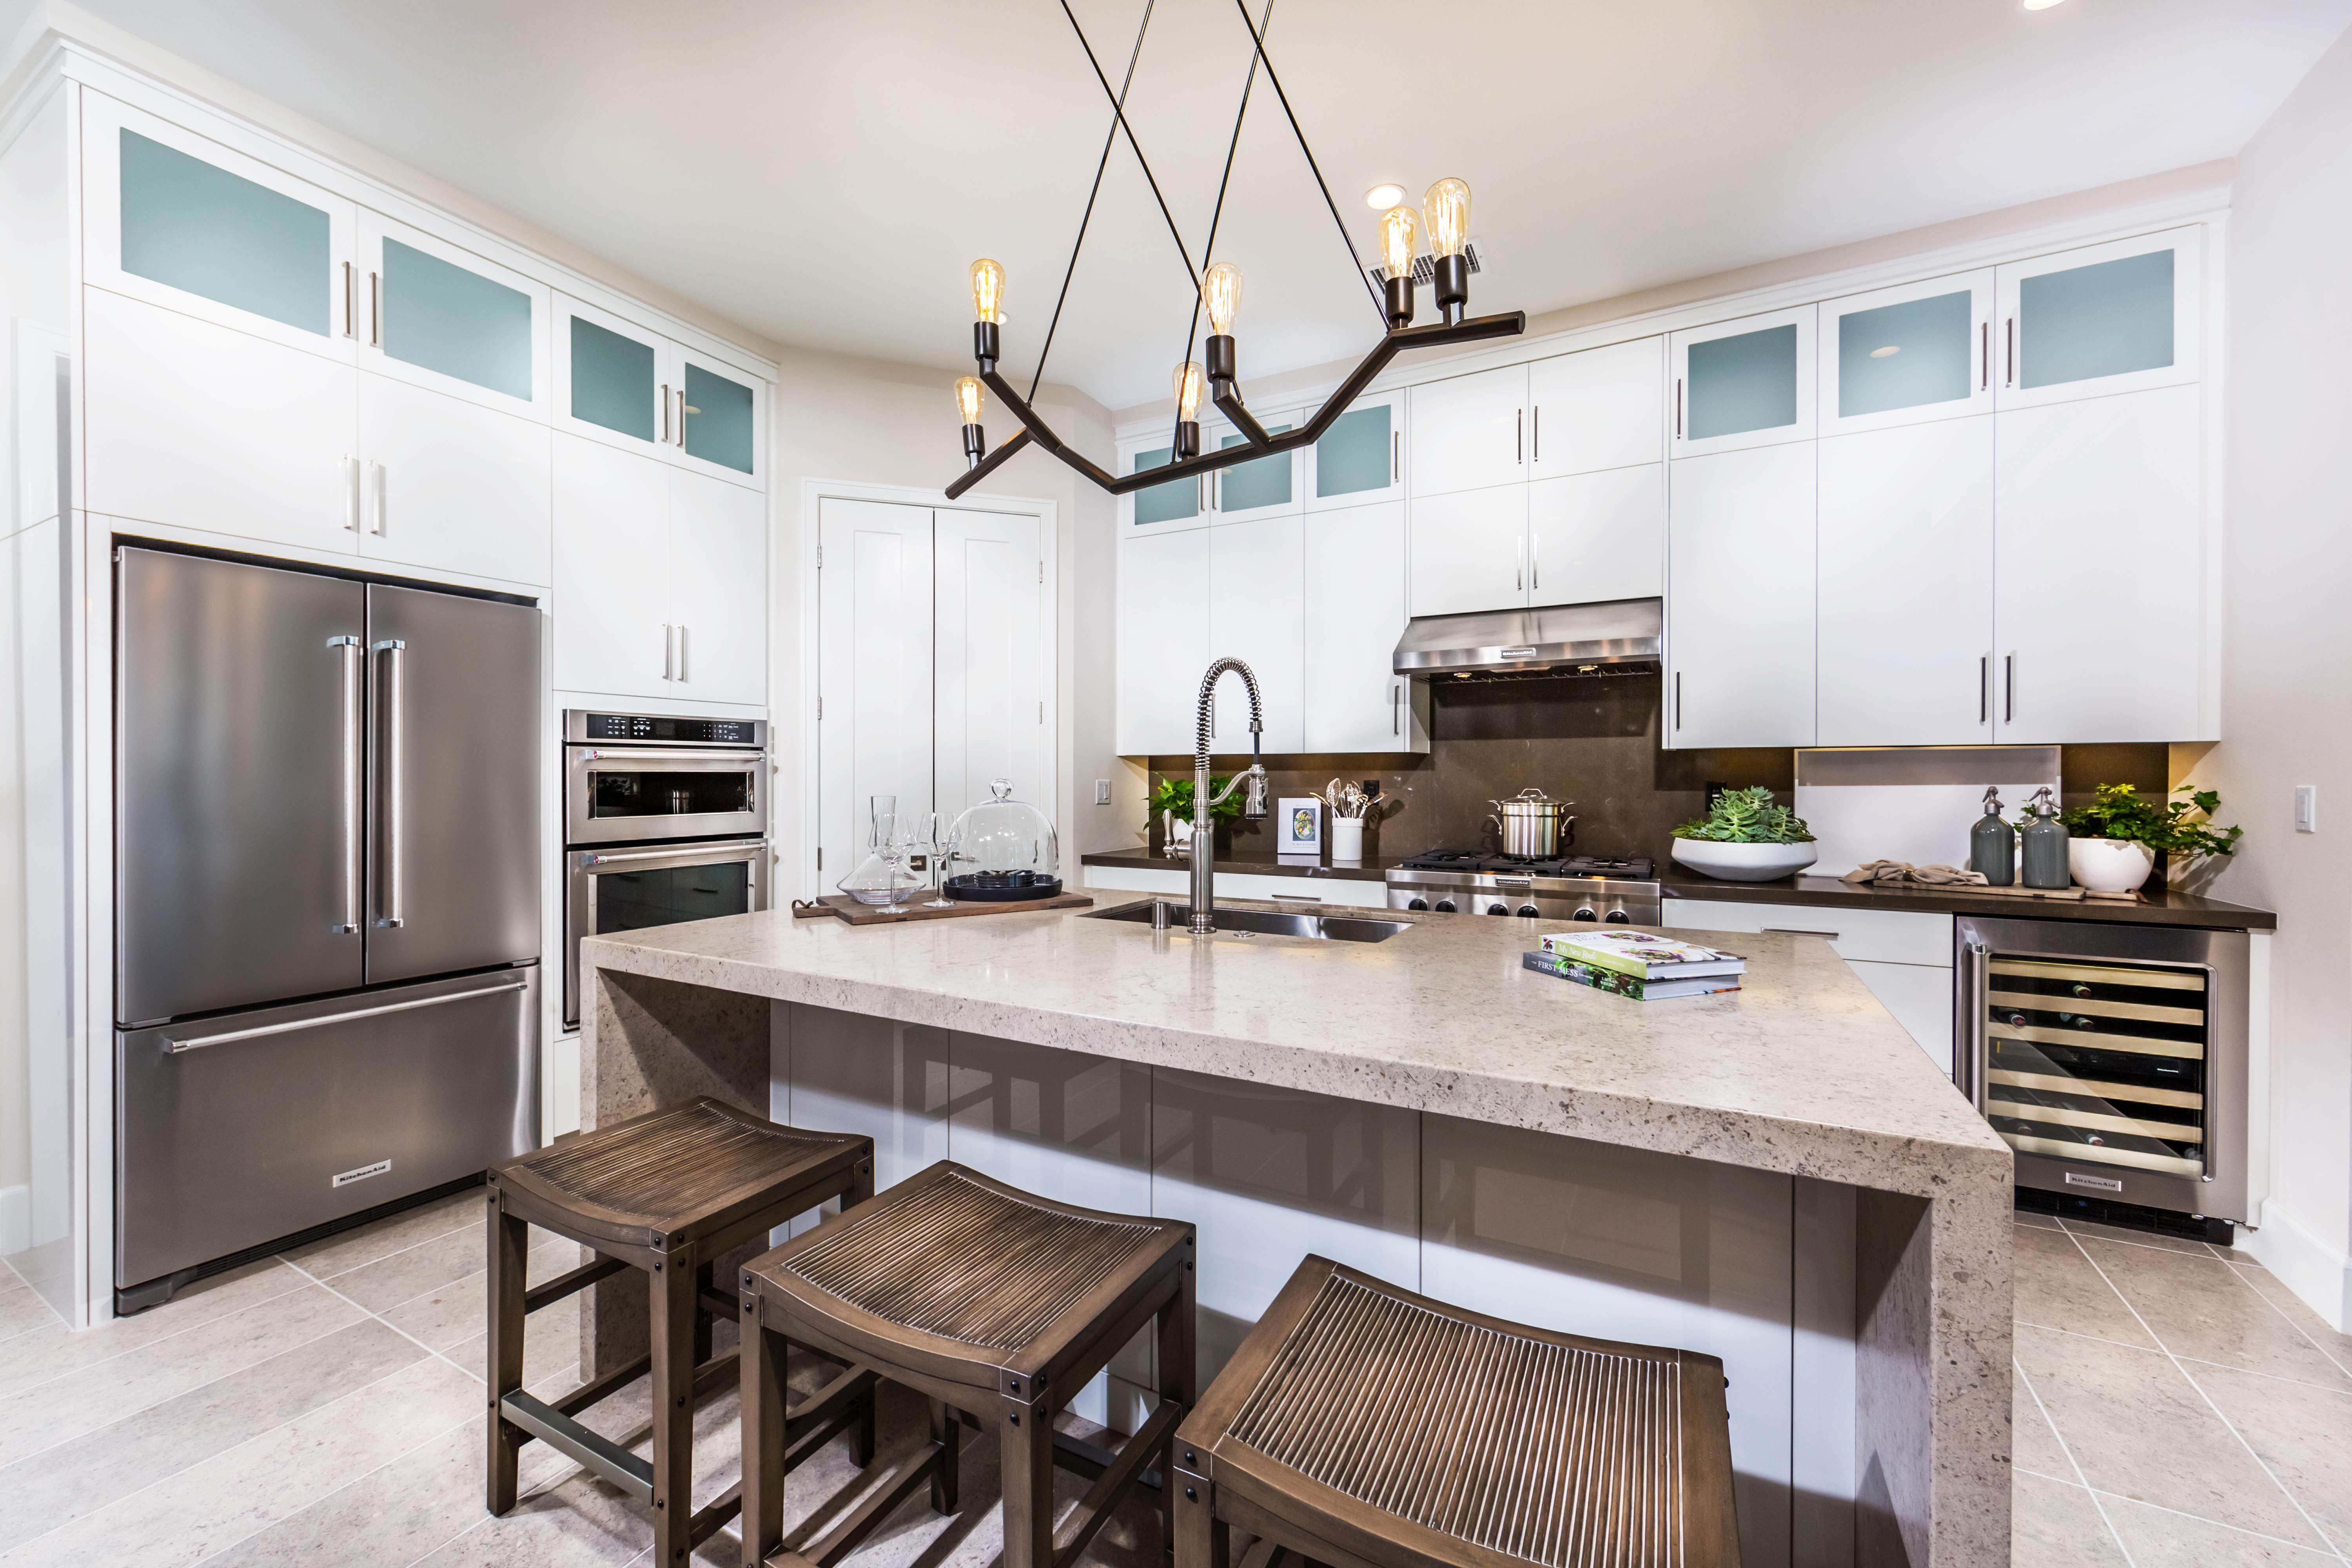 Kitchen Detail at Como Residence 1 in Irvine